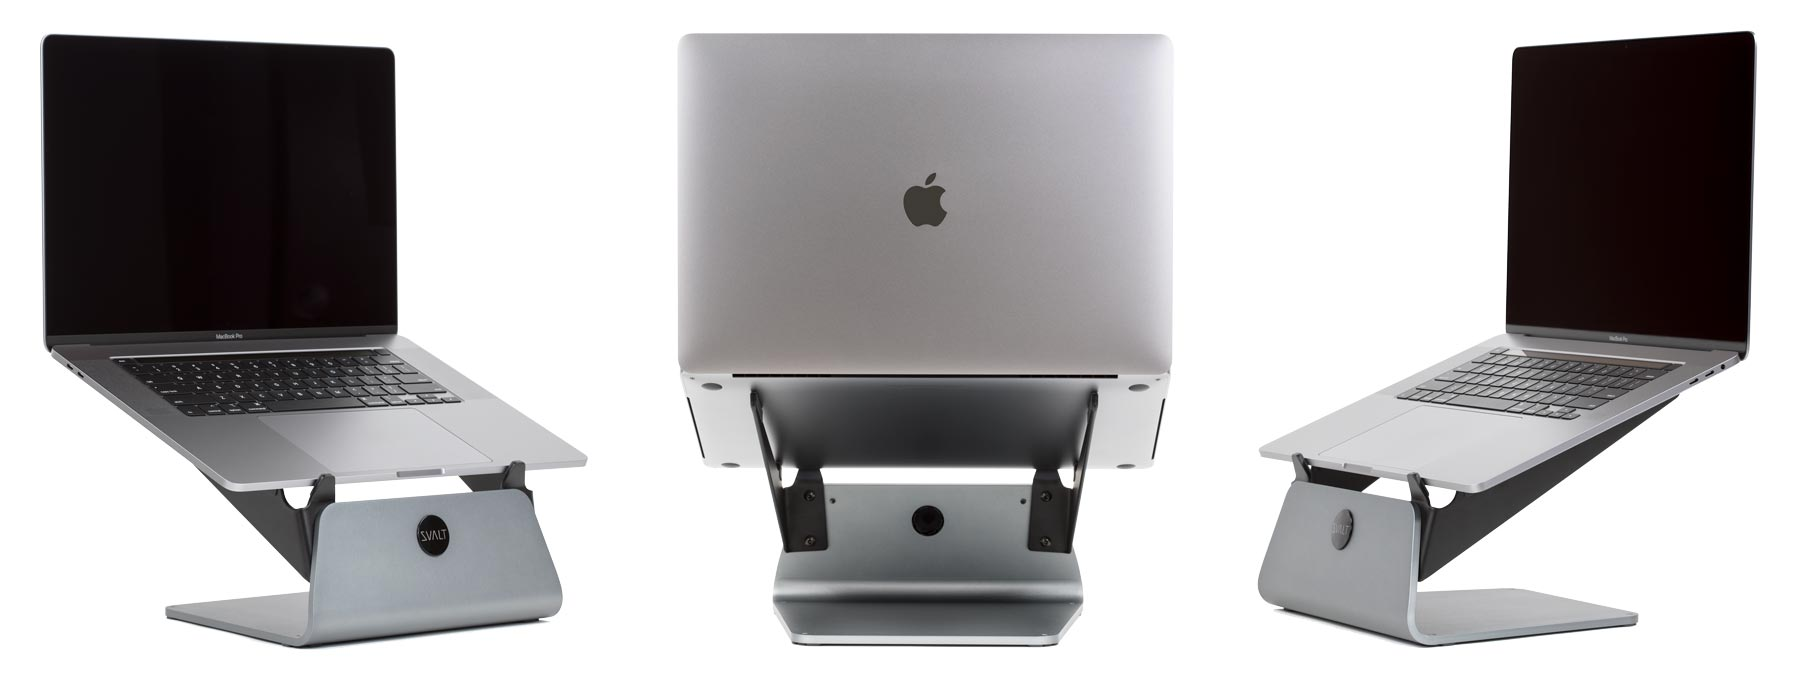 SVALT Cooling Stand model S with 16-inch MacBook Pro